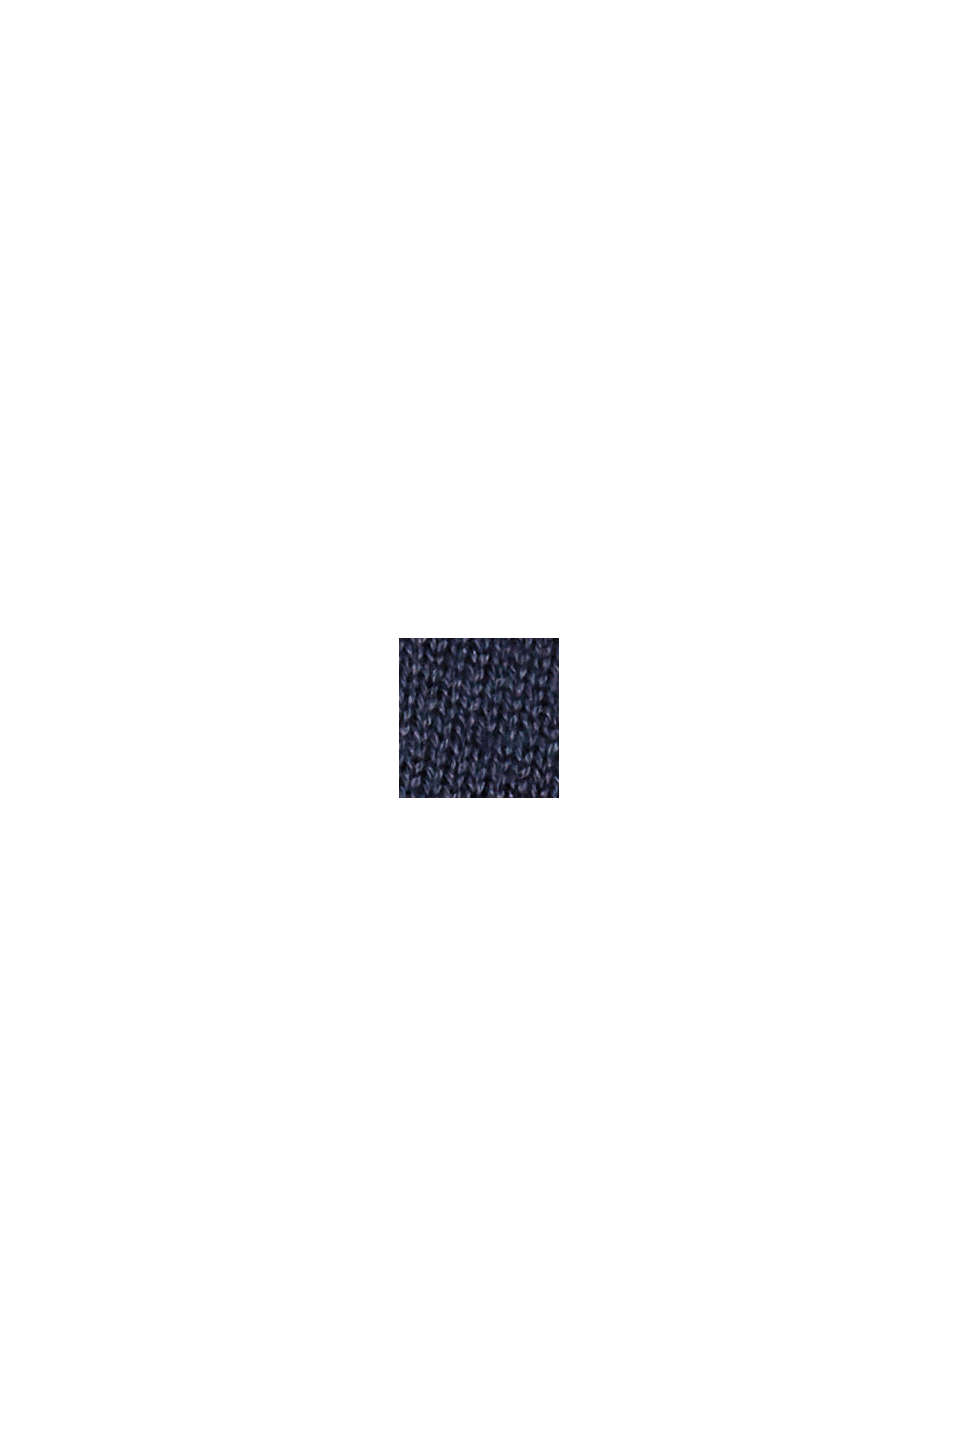 Pull-over rayé, 100 % coton, NAVY, swatch